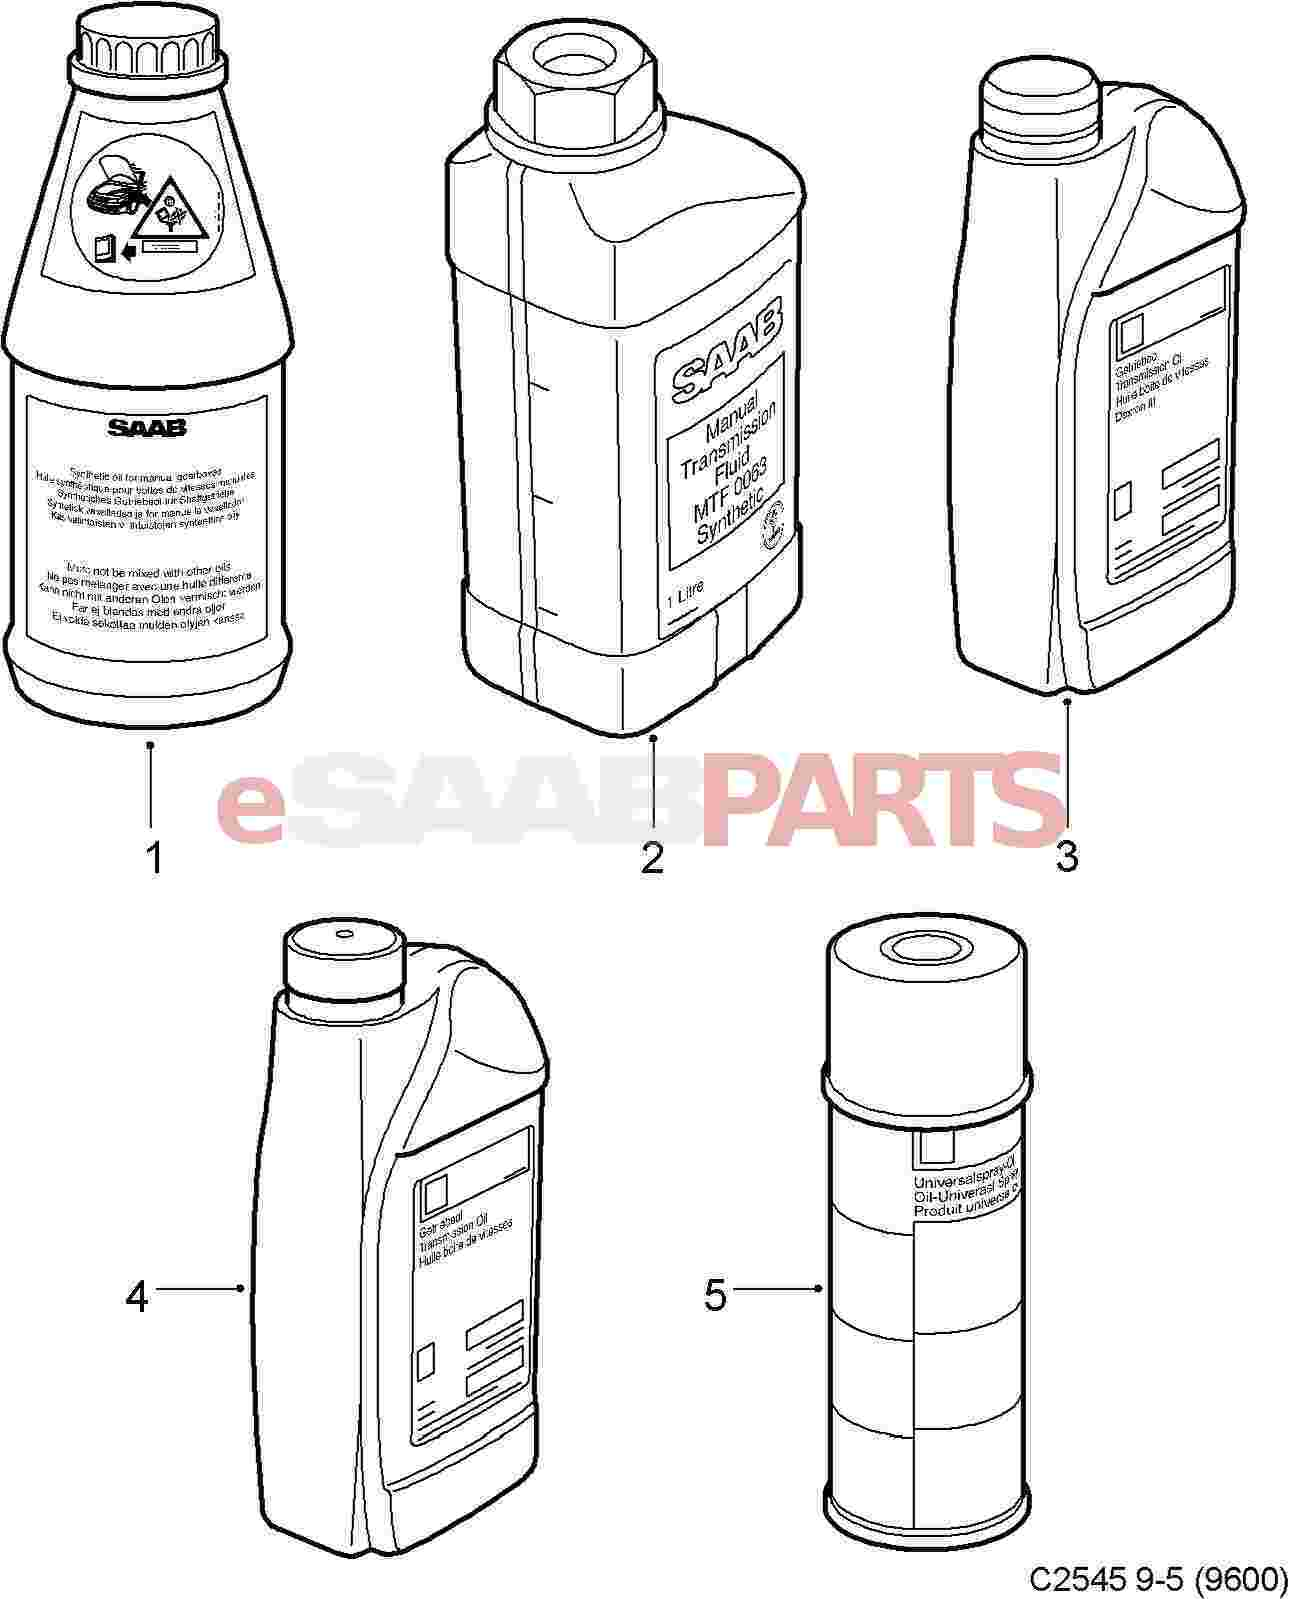 Saab Power Steering Fluid